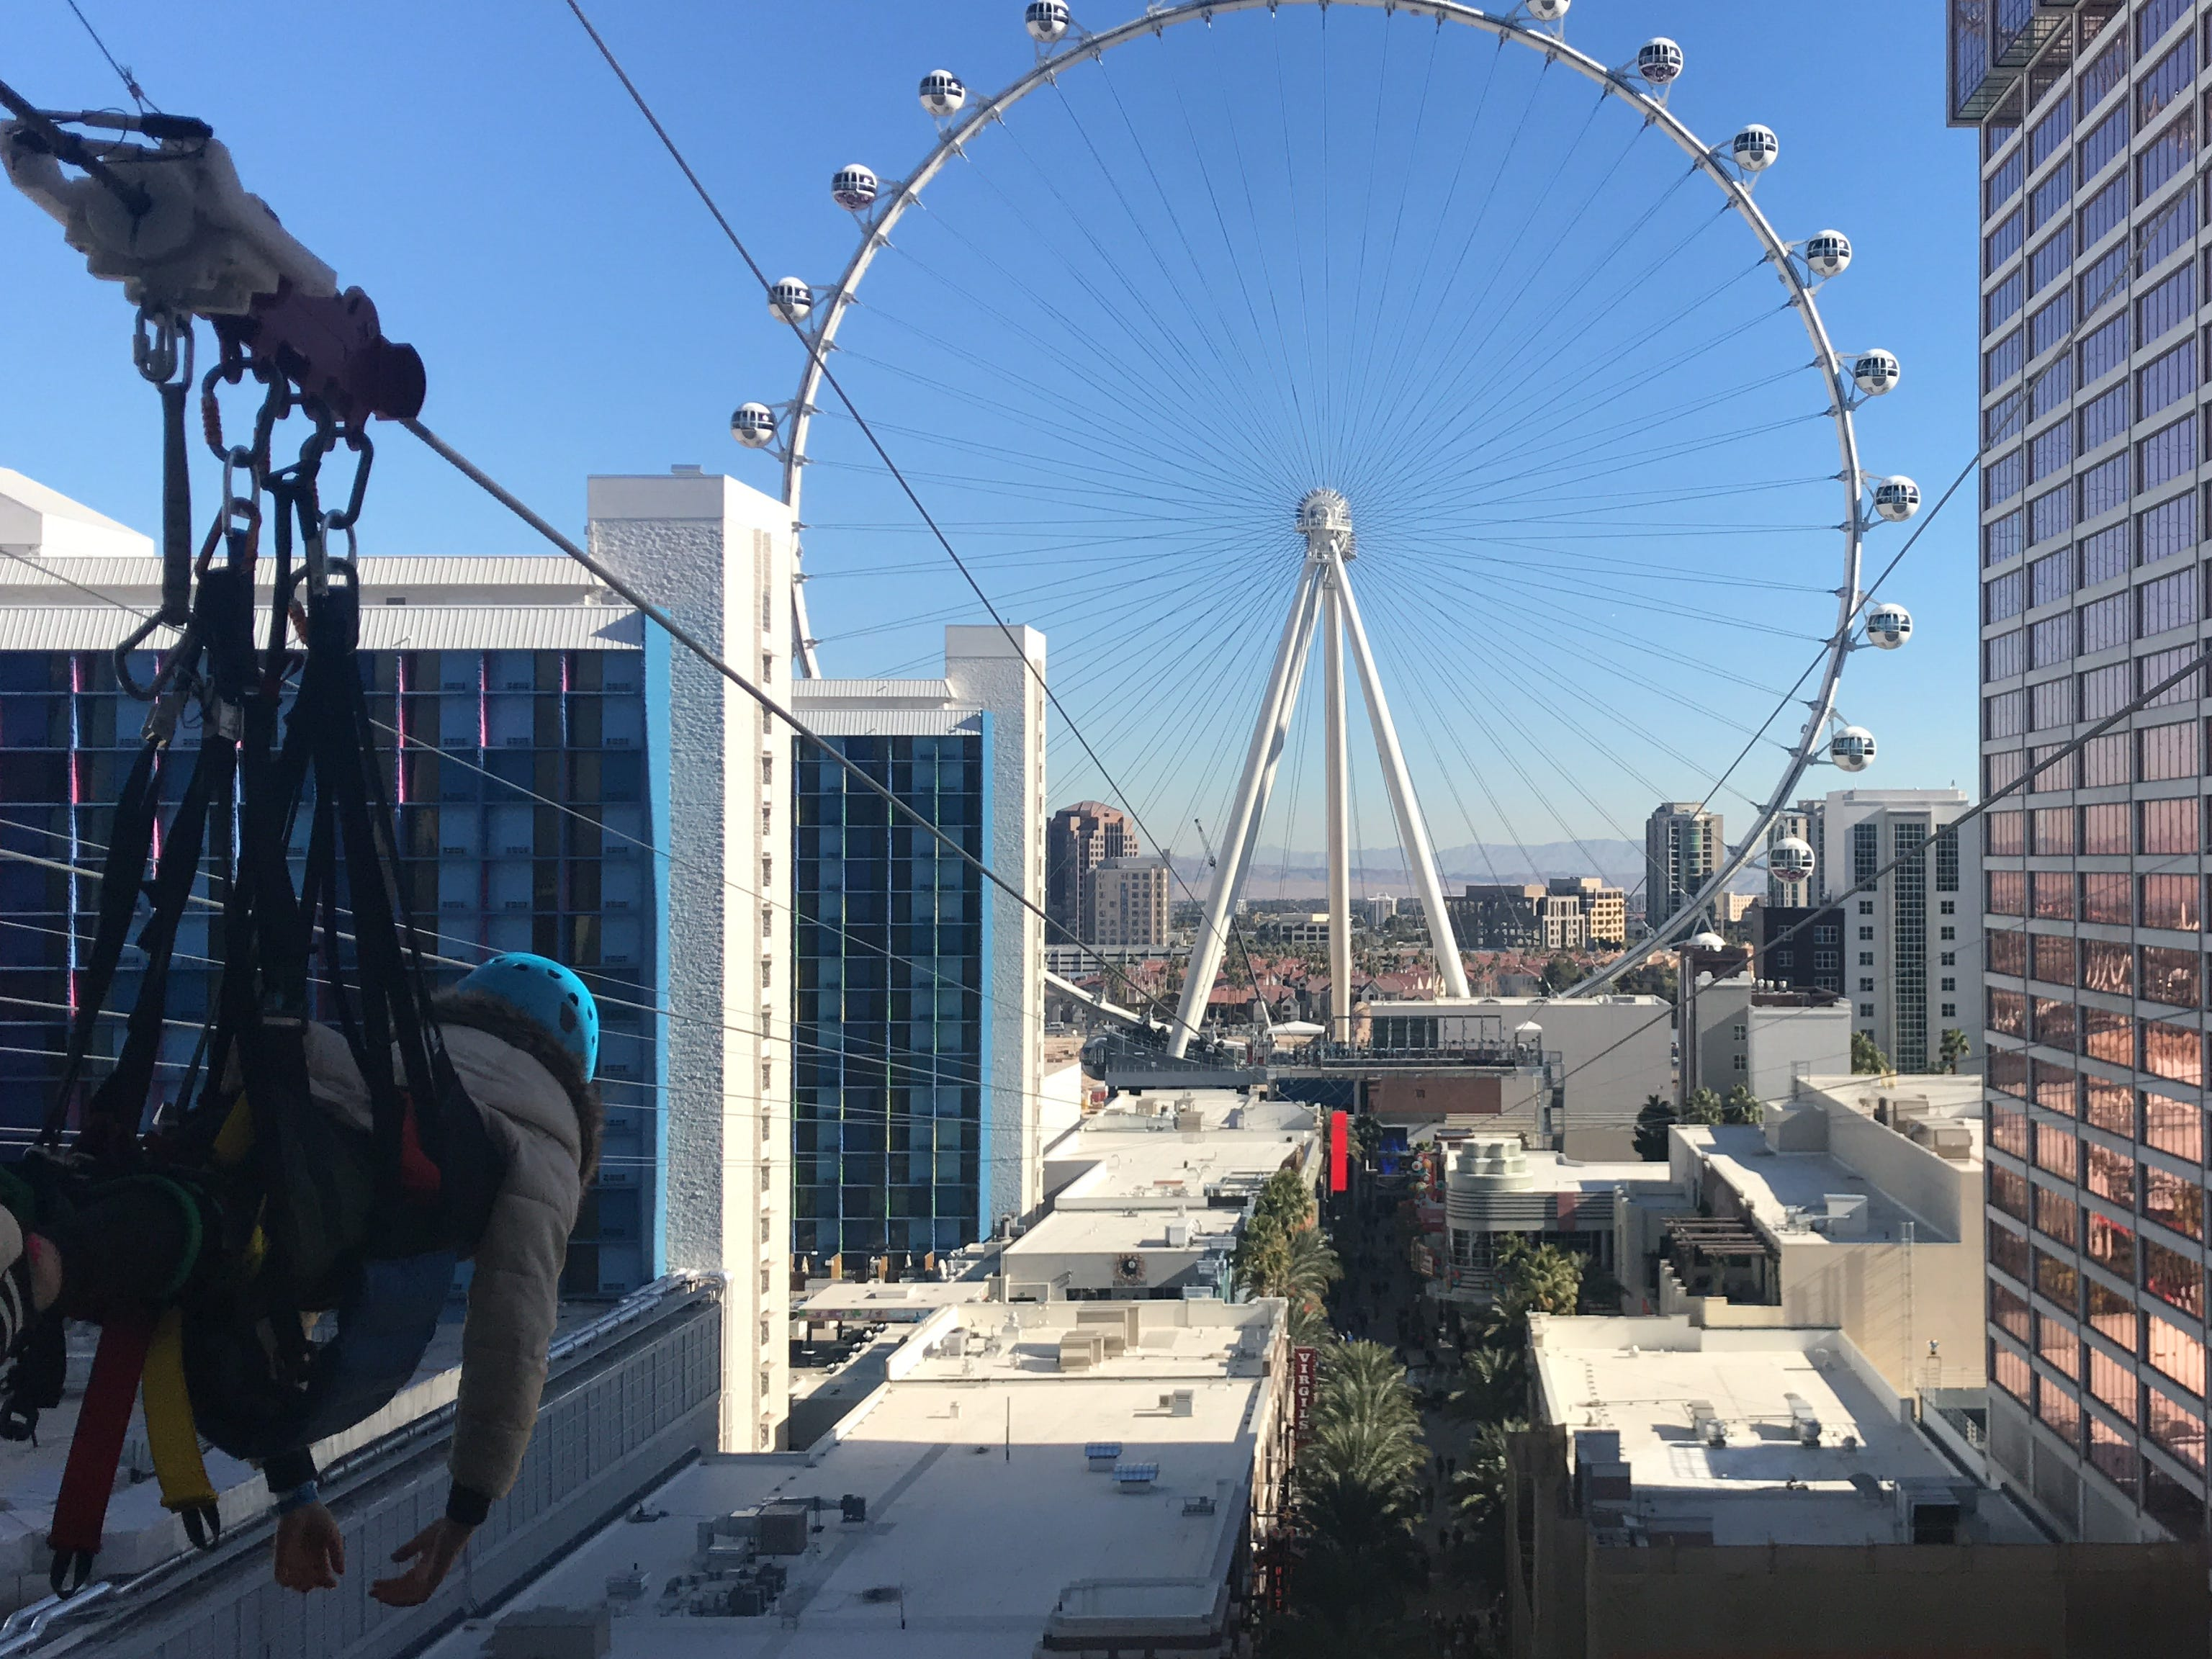 The new Fly Linq zipline between the Linq and Flamingo hotels on the Las Vegas Strip.